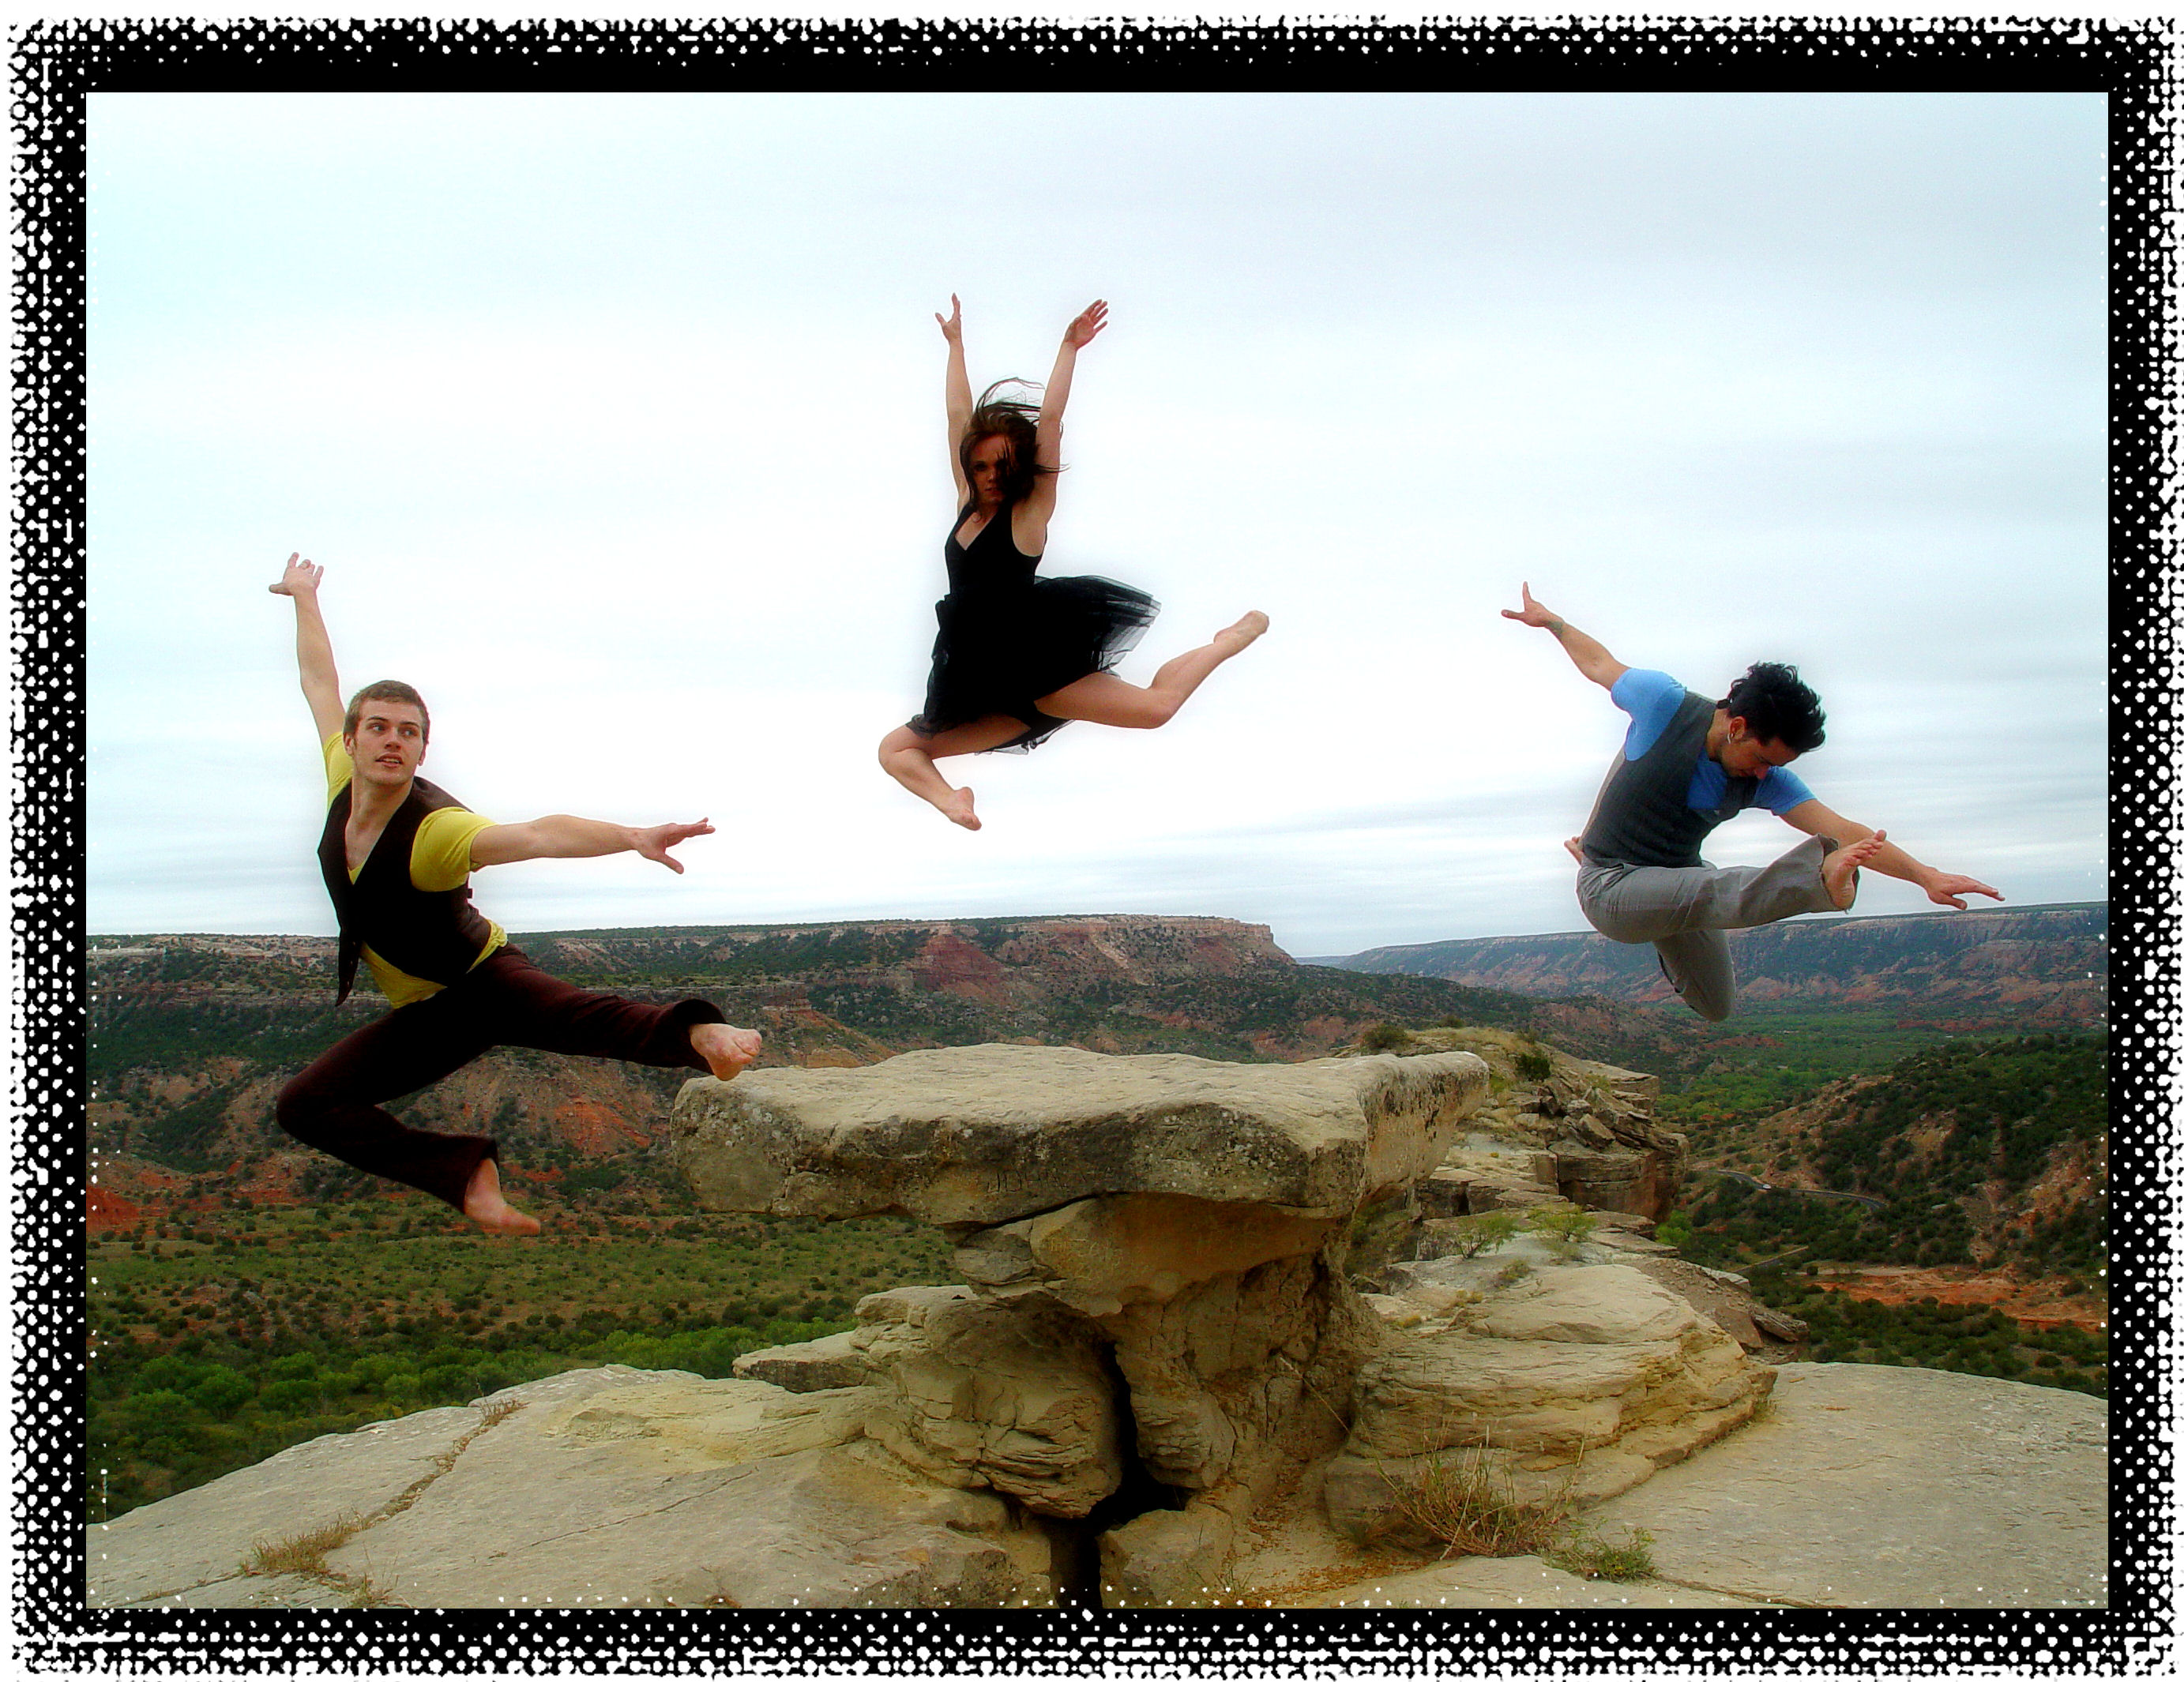 WTAMU Dancers at Palo Duro Canyon